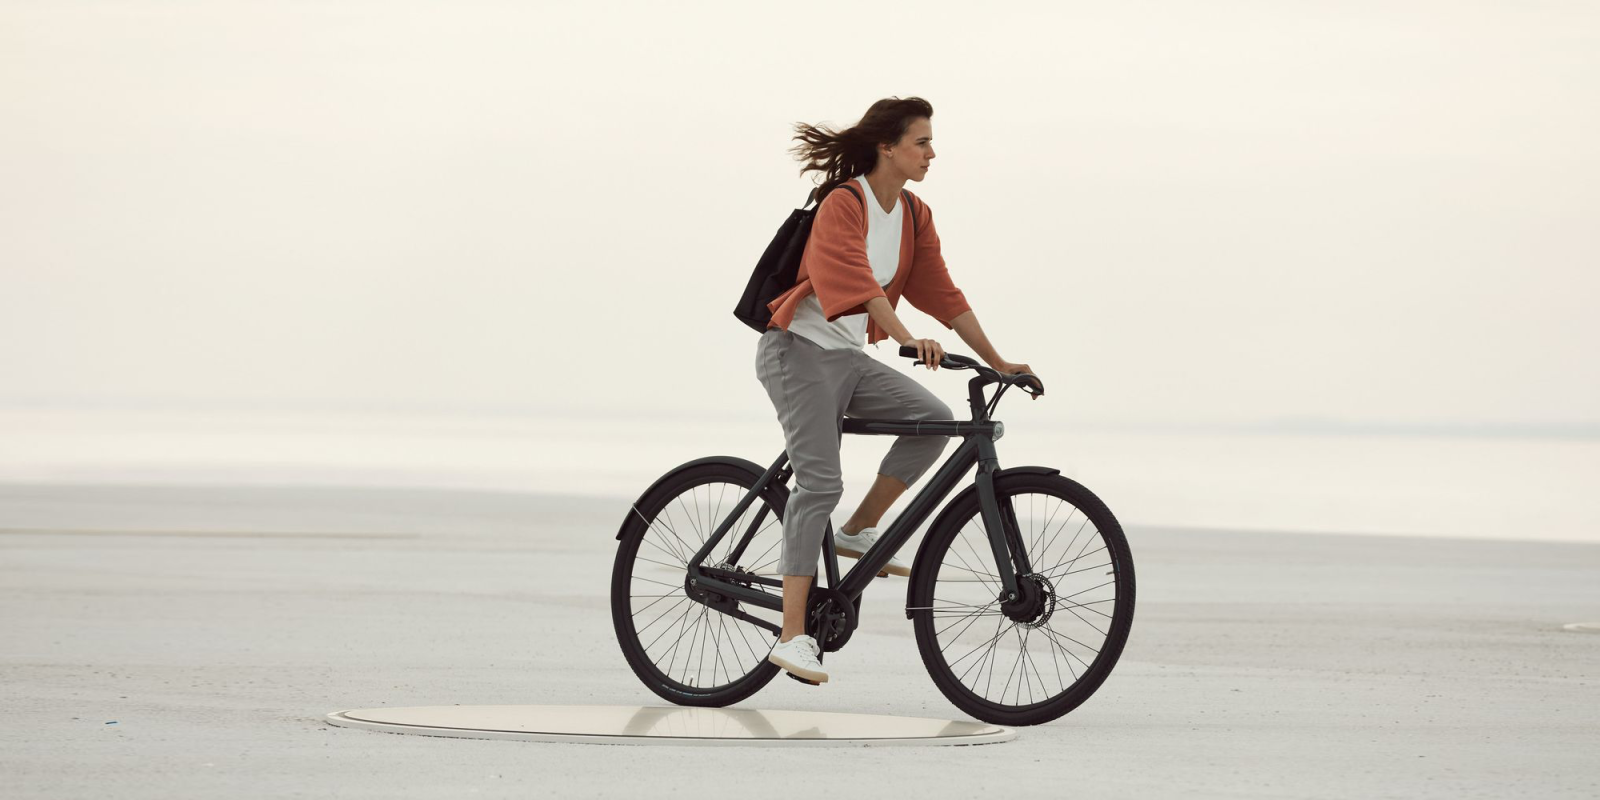 This is how easy it is to steal a $3,000 'unstealable' electric bicycle